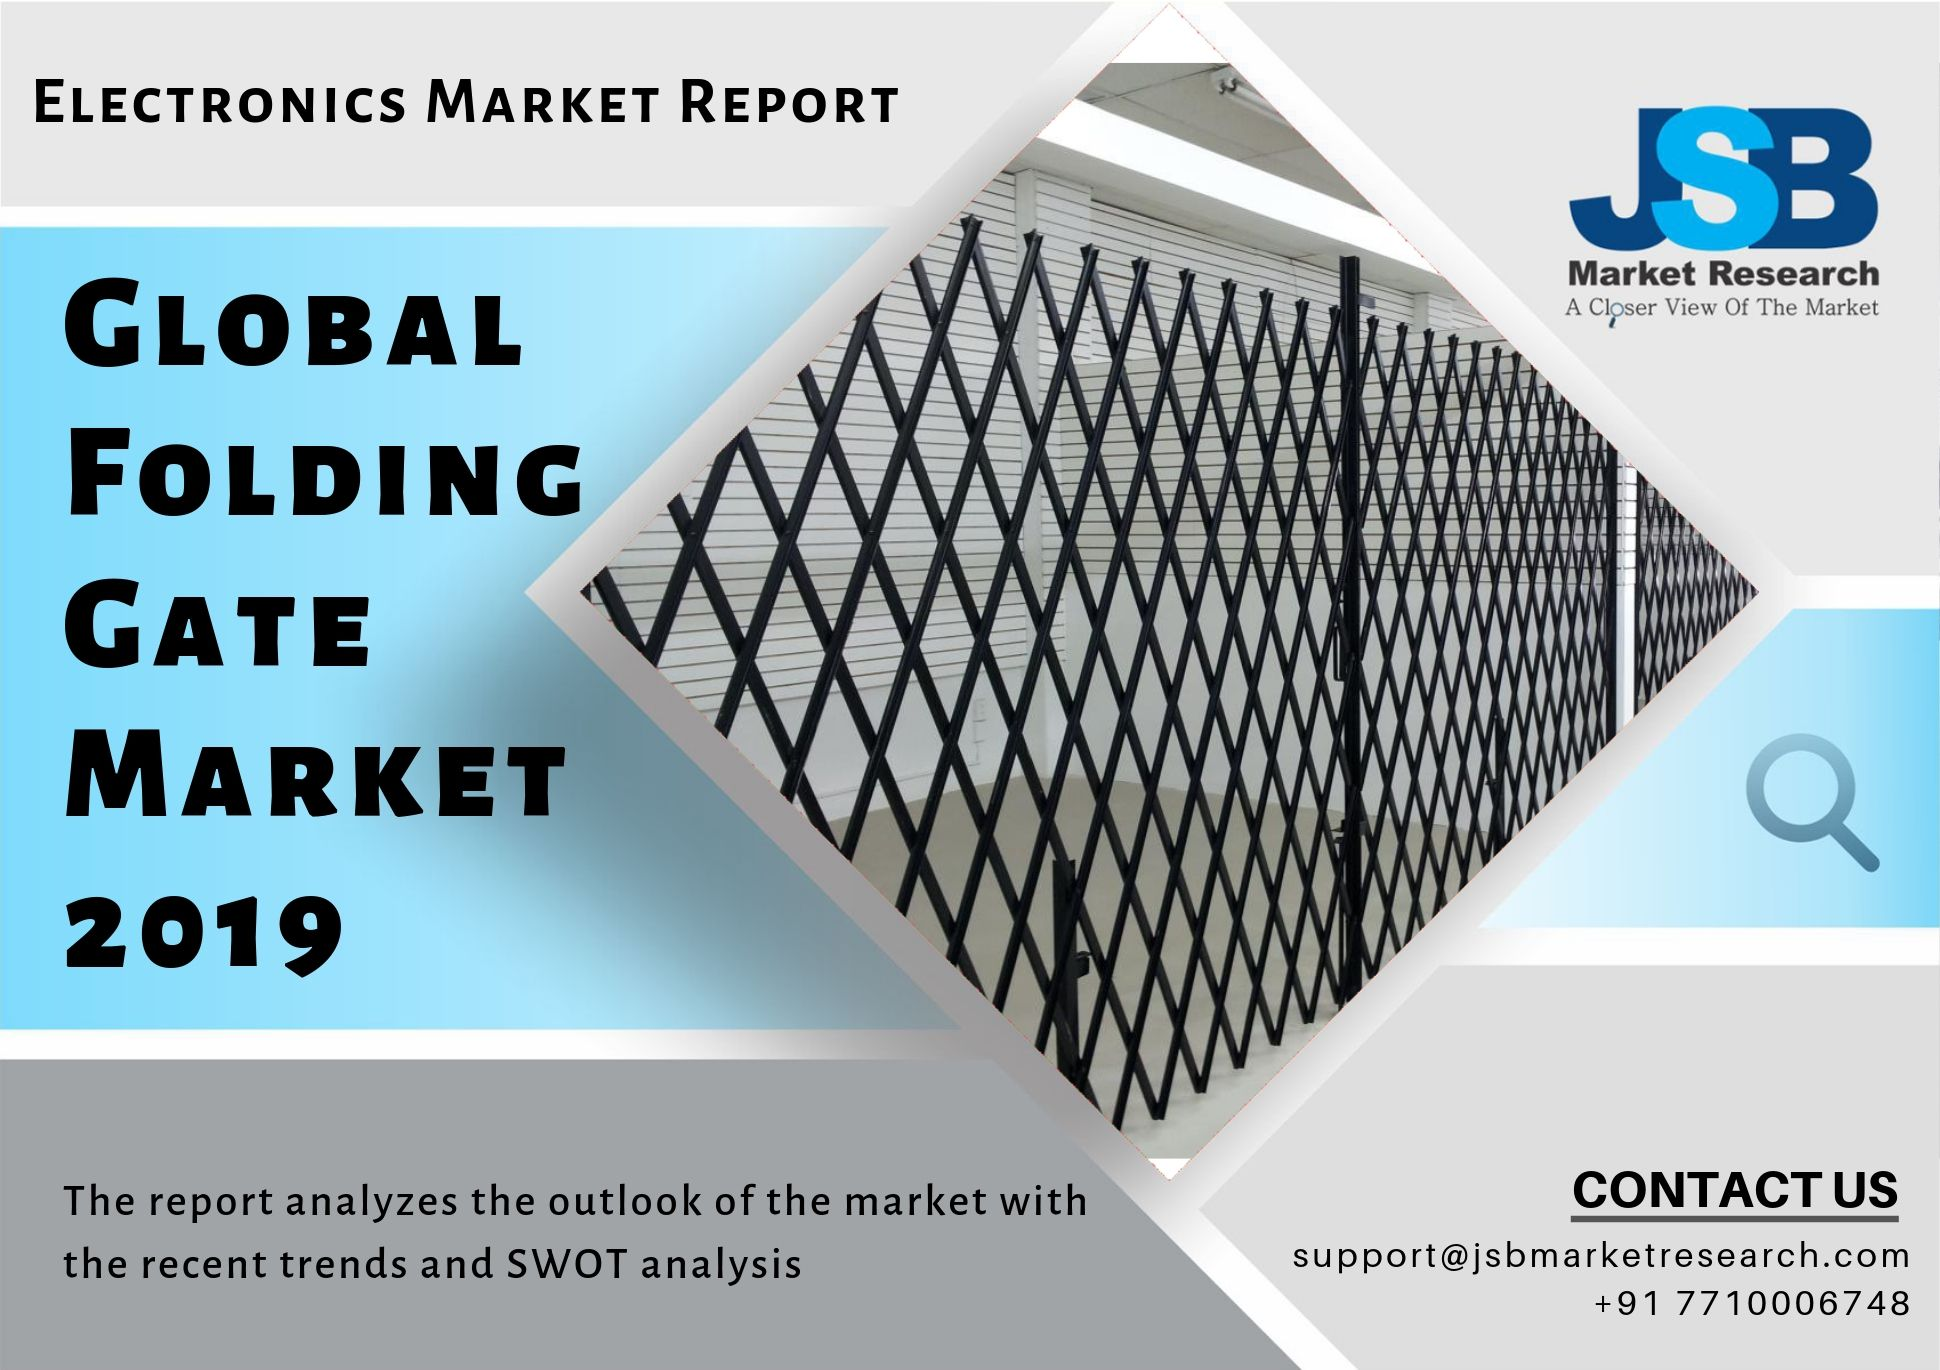 Global Folding Gate Market Report 2019 Market Size